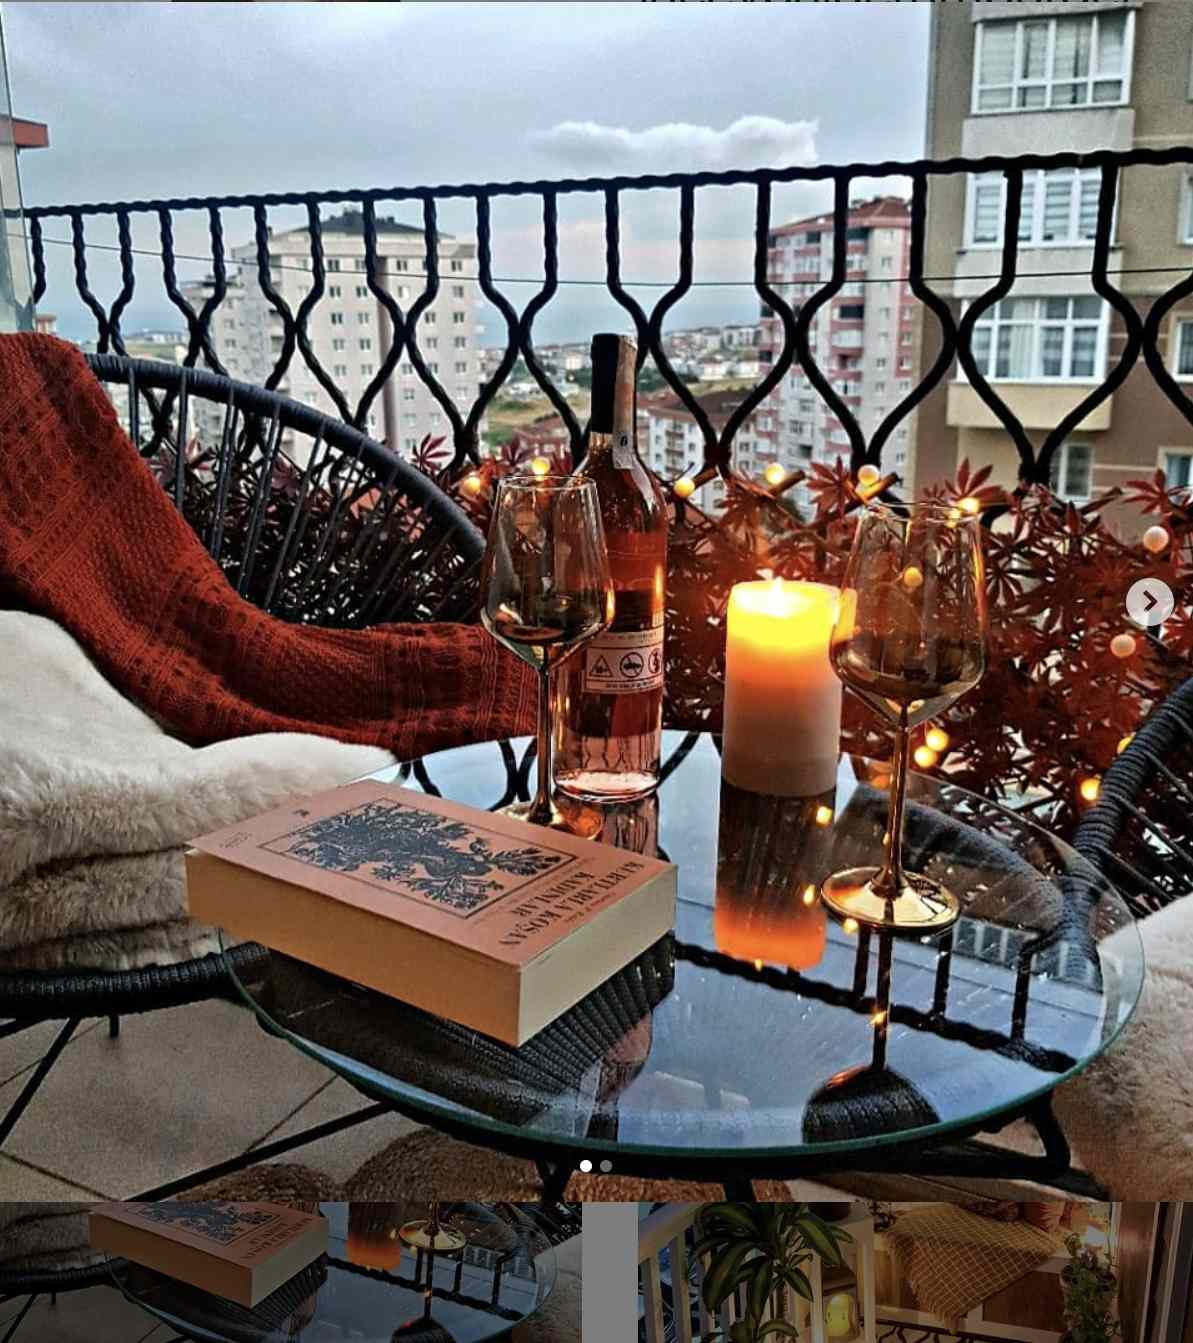 balcony with city views, glass table with two glasses of wine and bottle, candle, and book. Accent chair with blankets draped across.